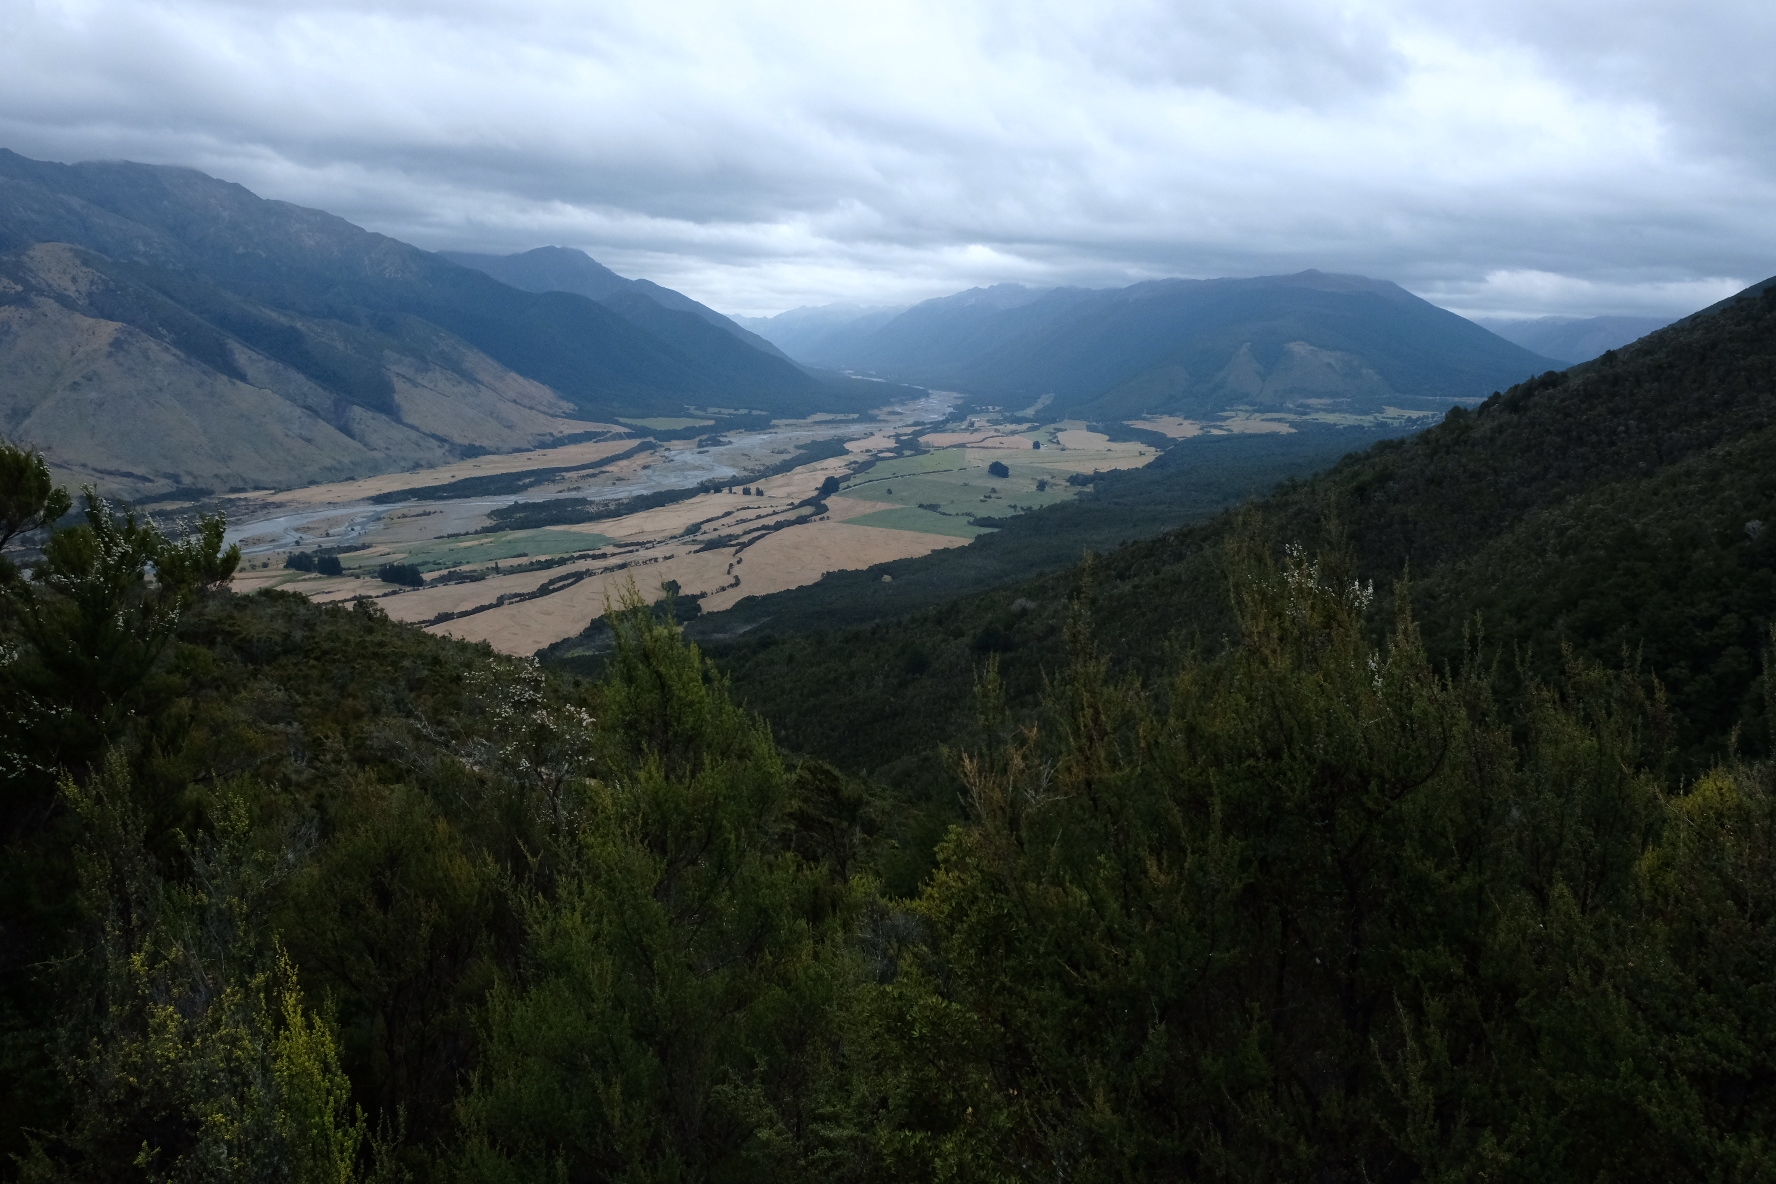 Down to St. Arnaud